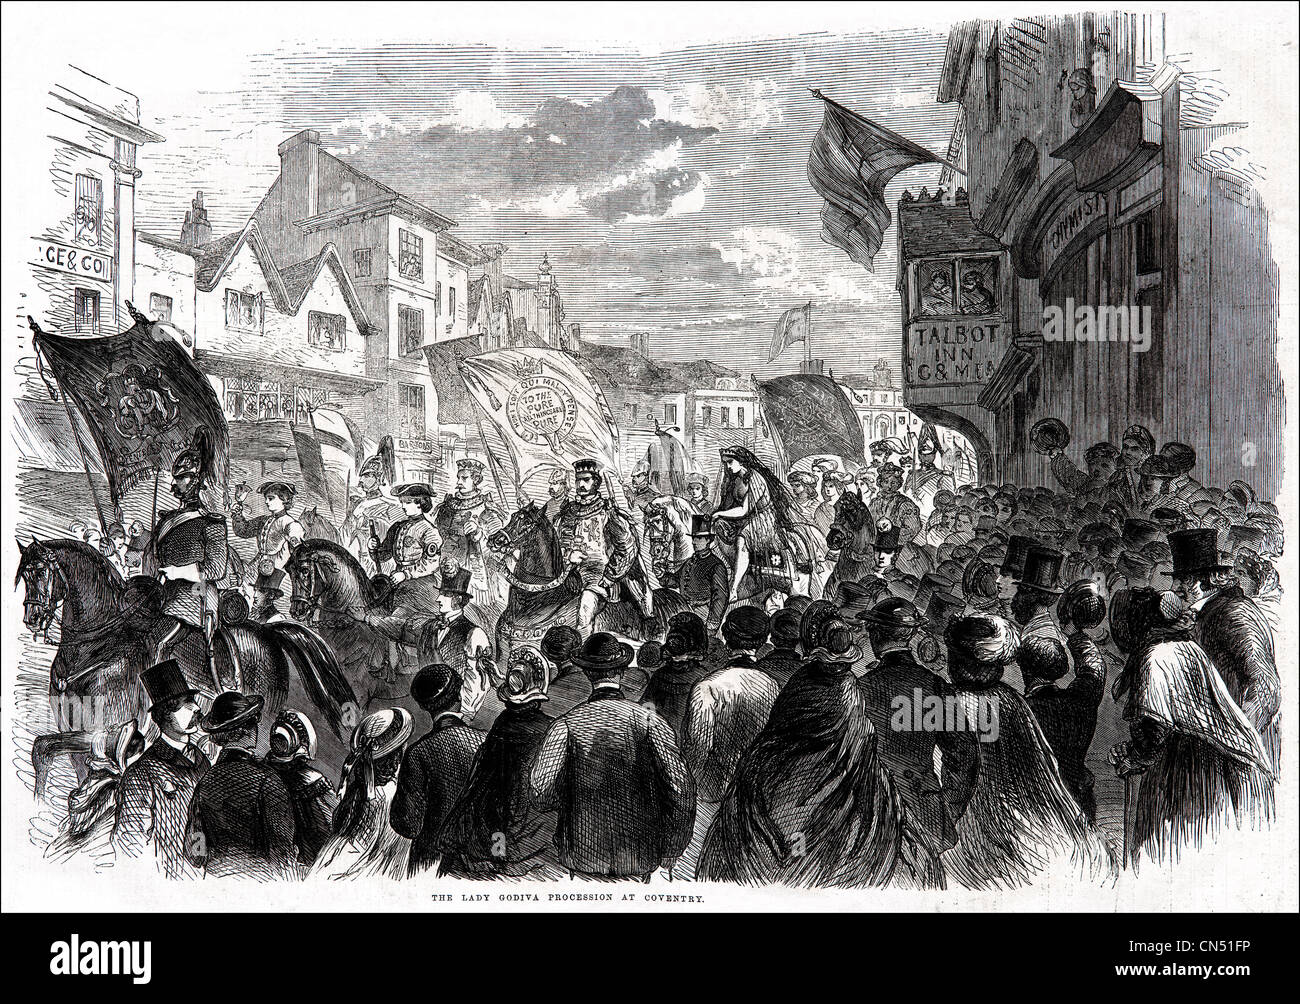 Lady Godiva procession through Coventry Victorian engraving dated 5th July 1862 Stock Photo